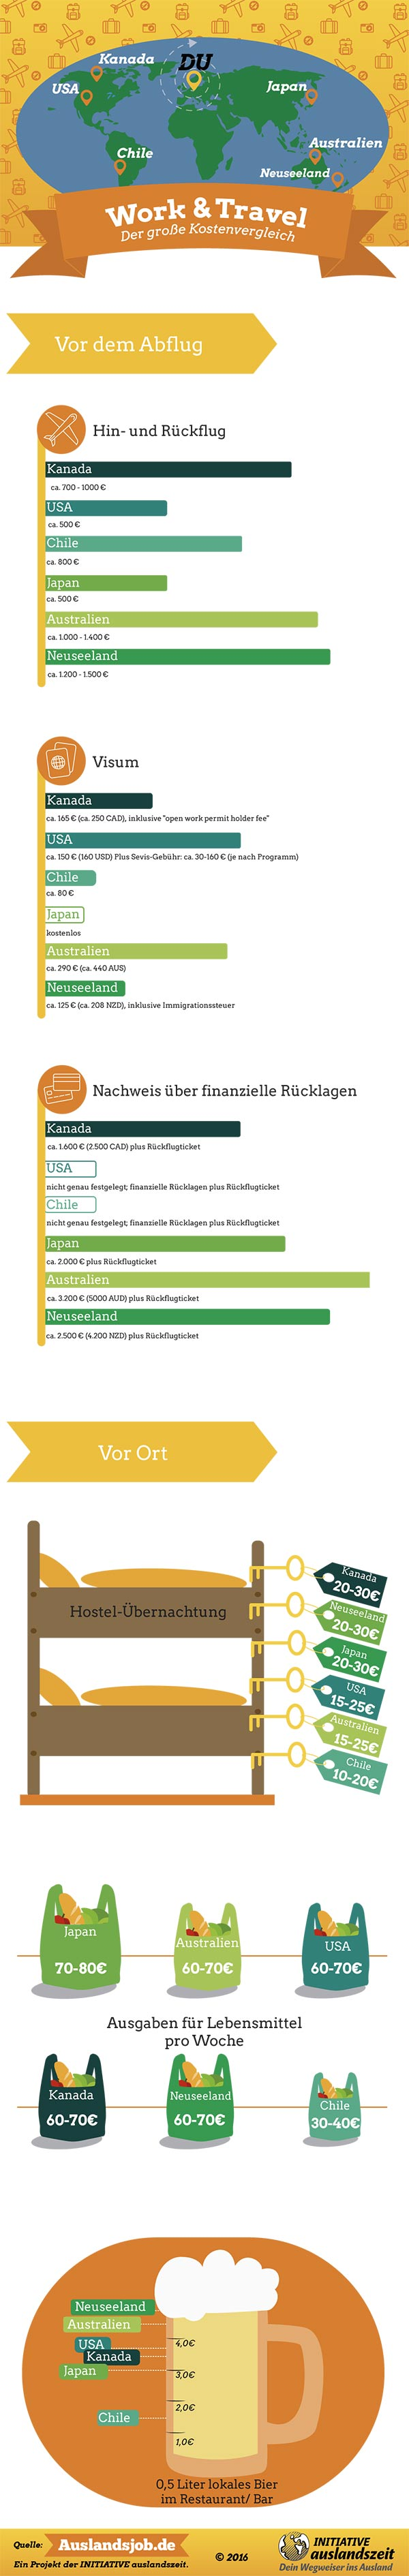 work-travel-kostenvergleich-infografik